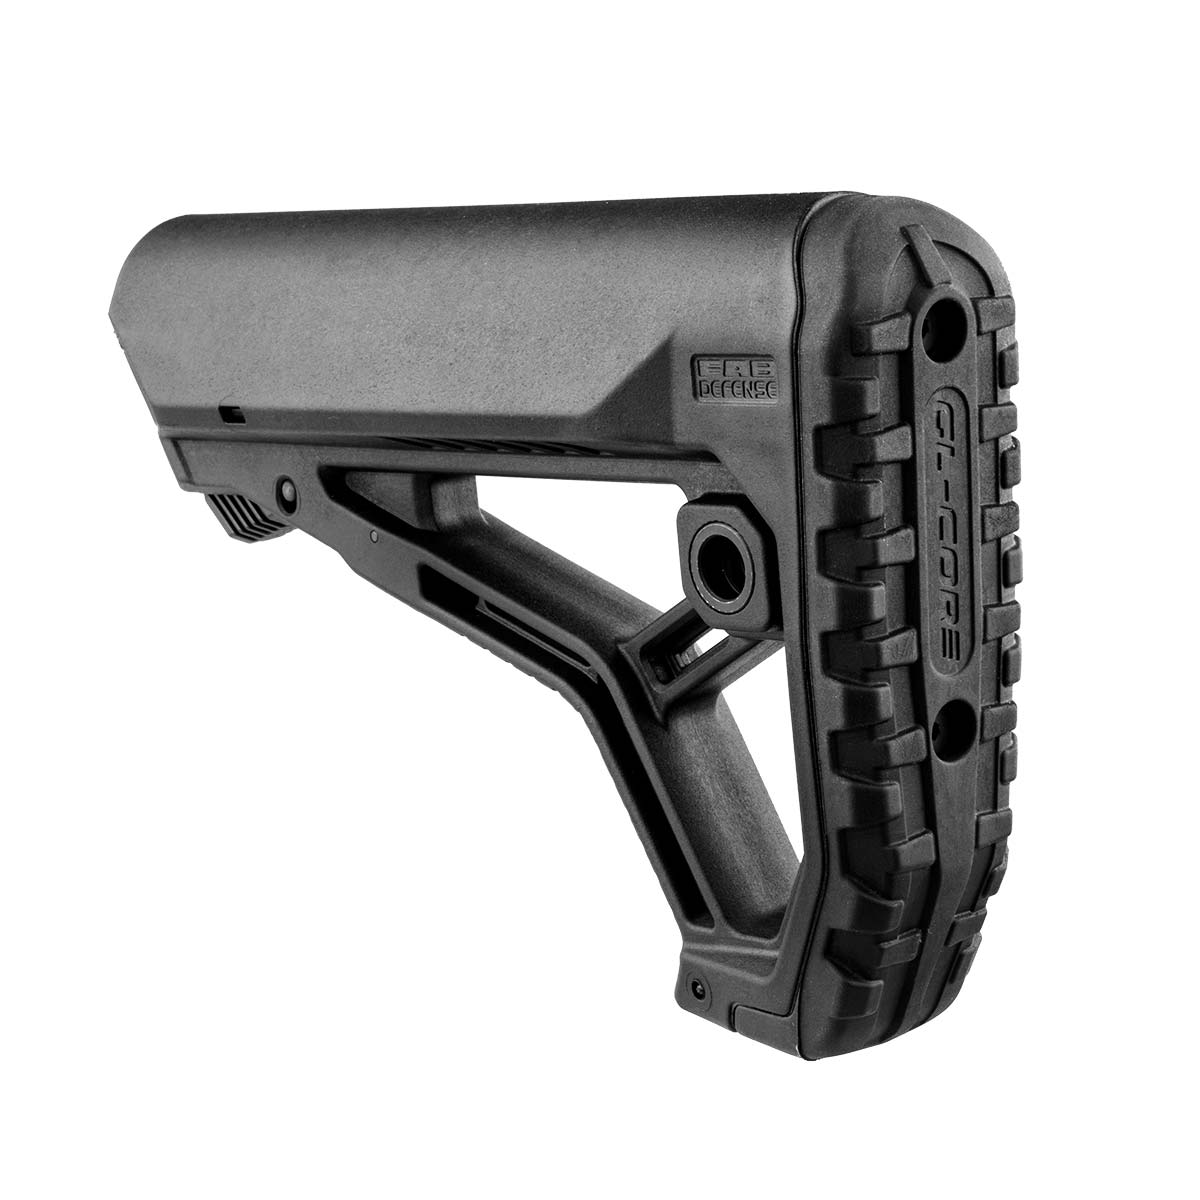 fab-defense-gl-core-lightweight-tactical-ar15-stock-4